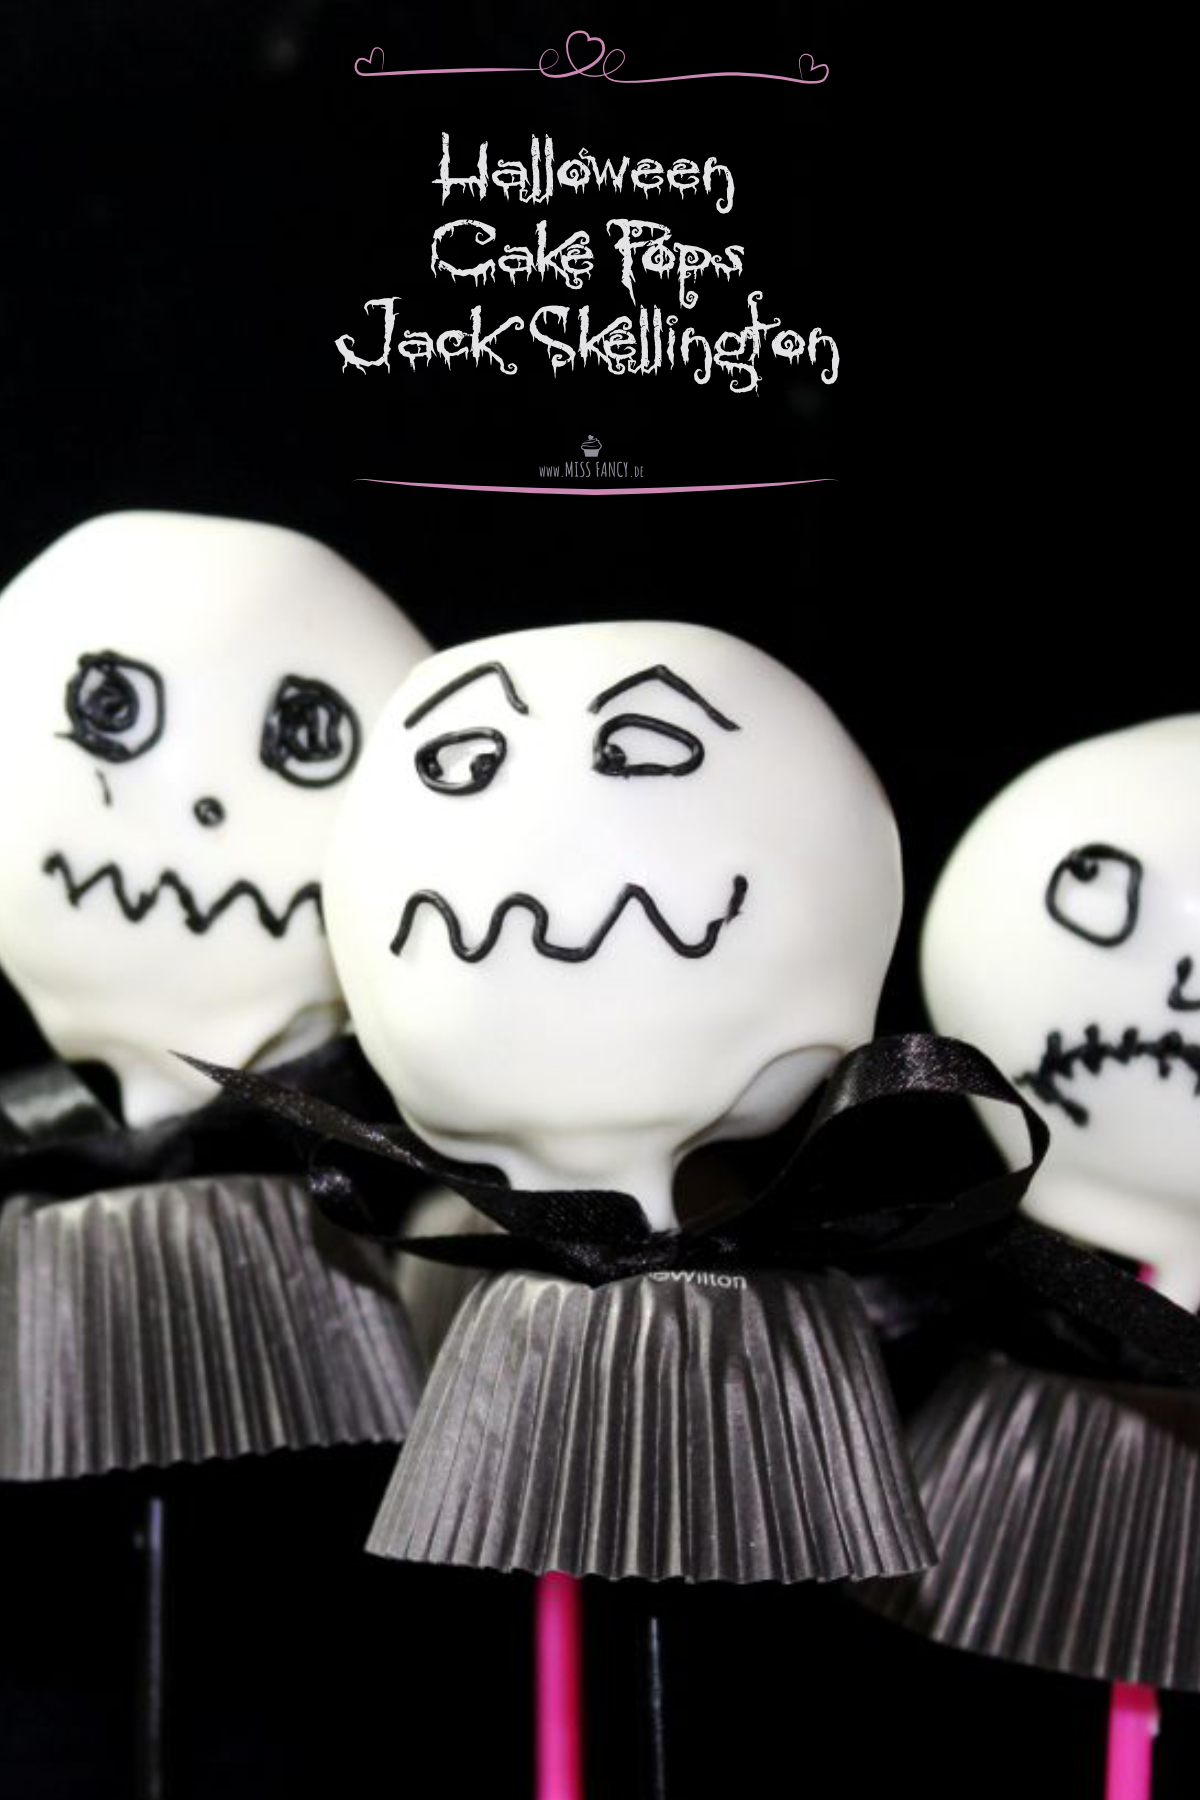 Rezept-Halloween-Cake-Pops-Jack-Skellington-Fingerfood